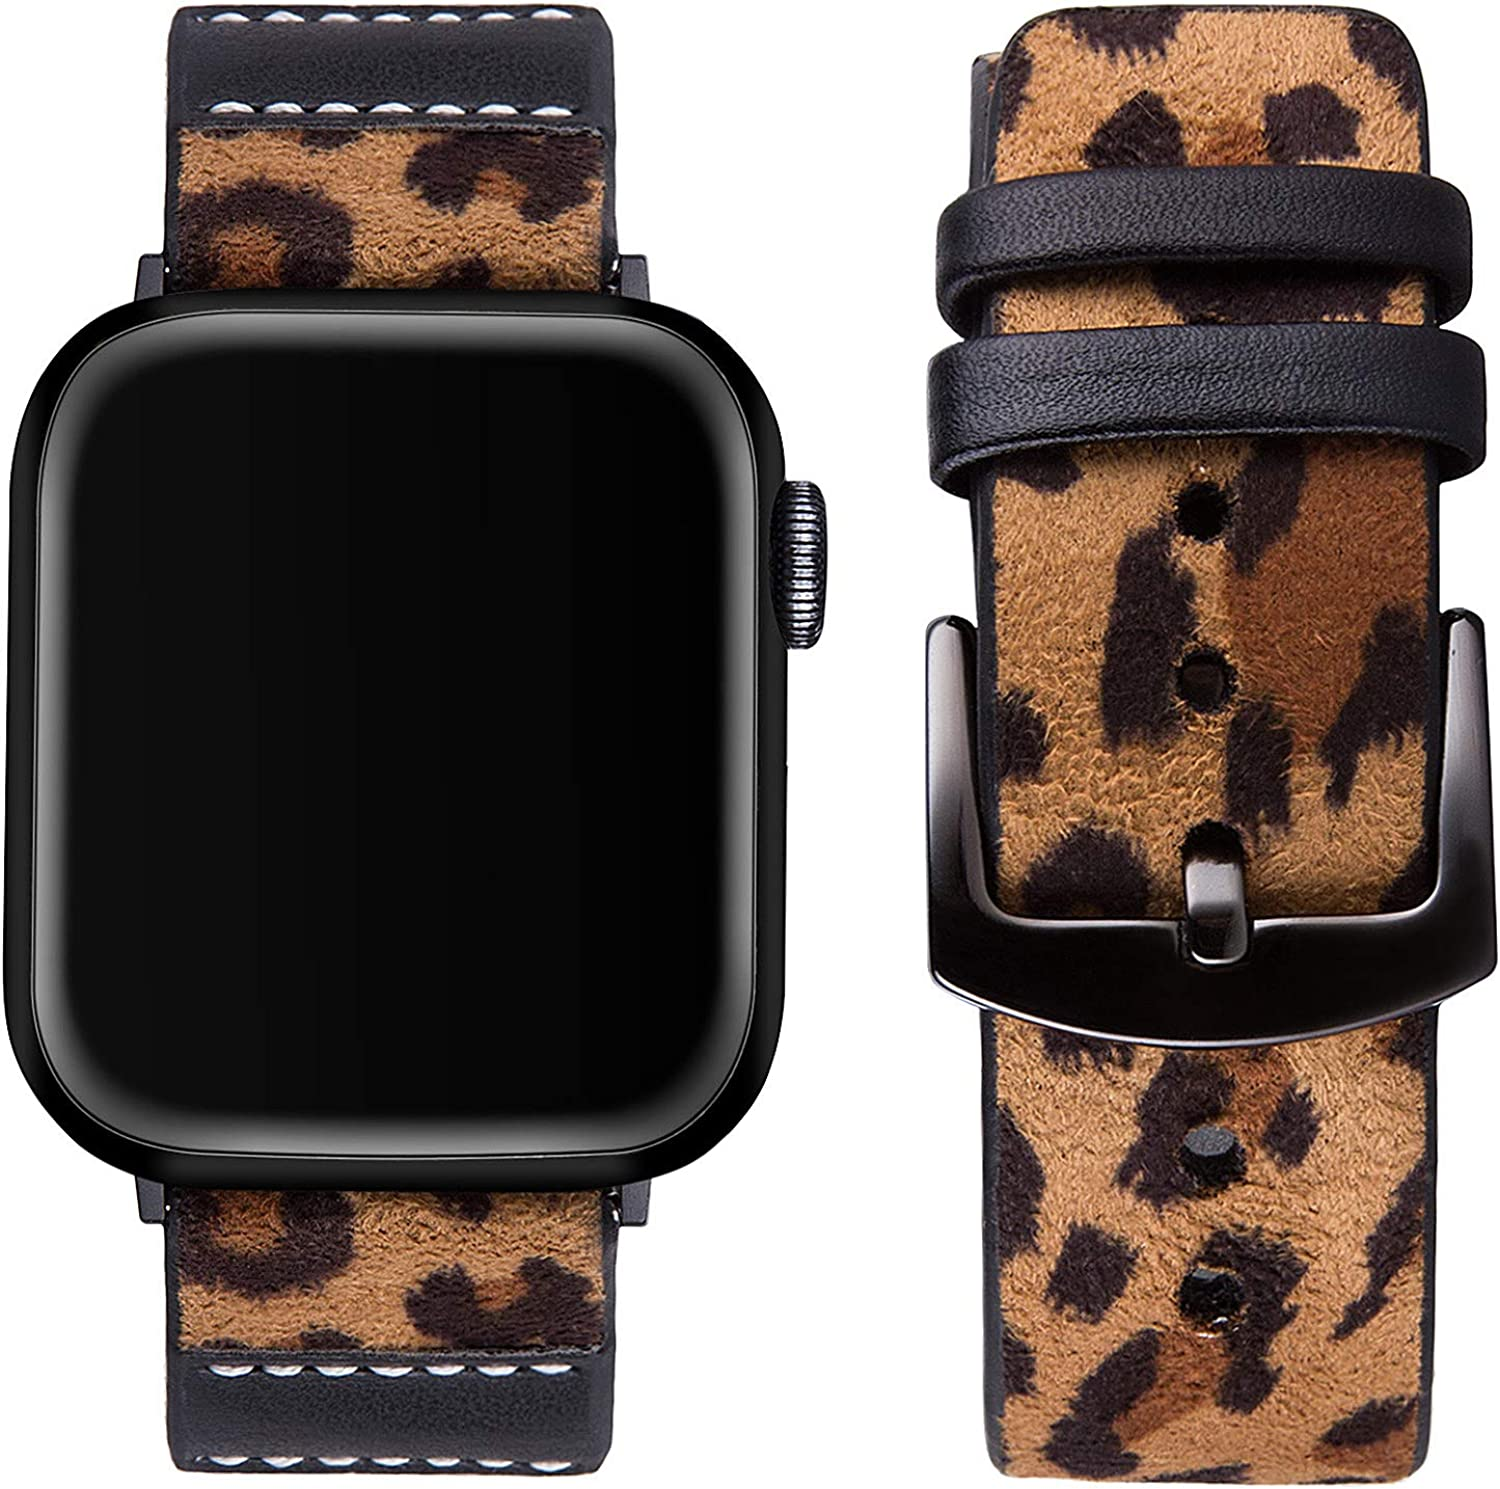 Vikoros Vintage Leather Band Compatible with Apple Watch 38mm 40mm 42mm 44mm Men Women, Retro Leopard Leather Replacement Strap Wristbands for iwatch Series 5 4 3 2 1 Black Metal Clasp